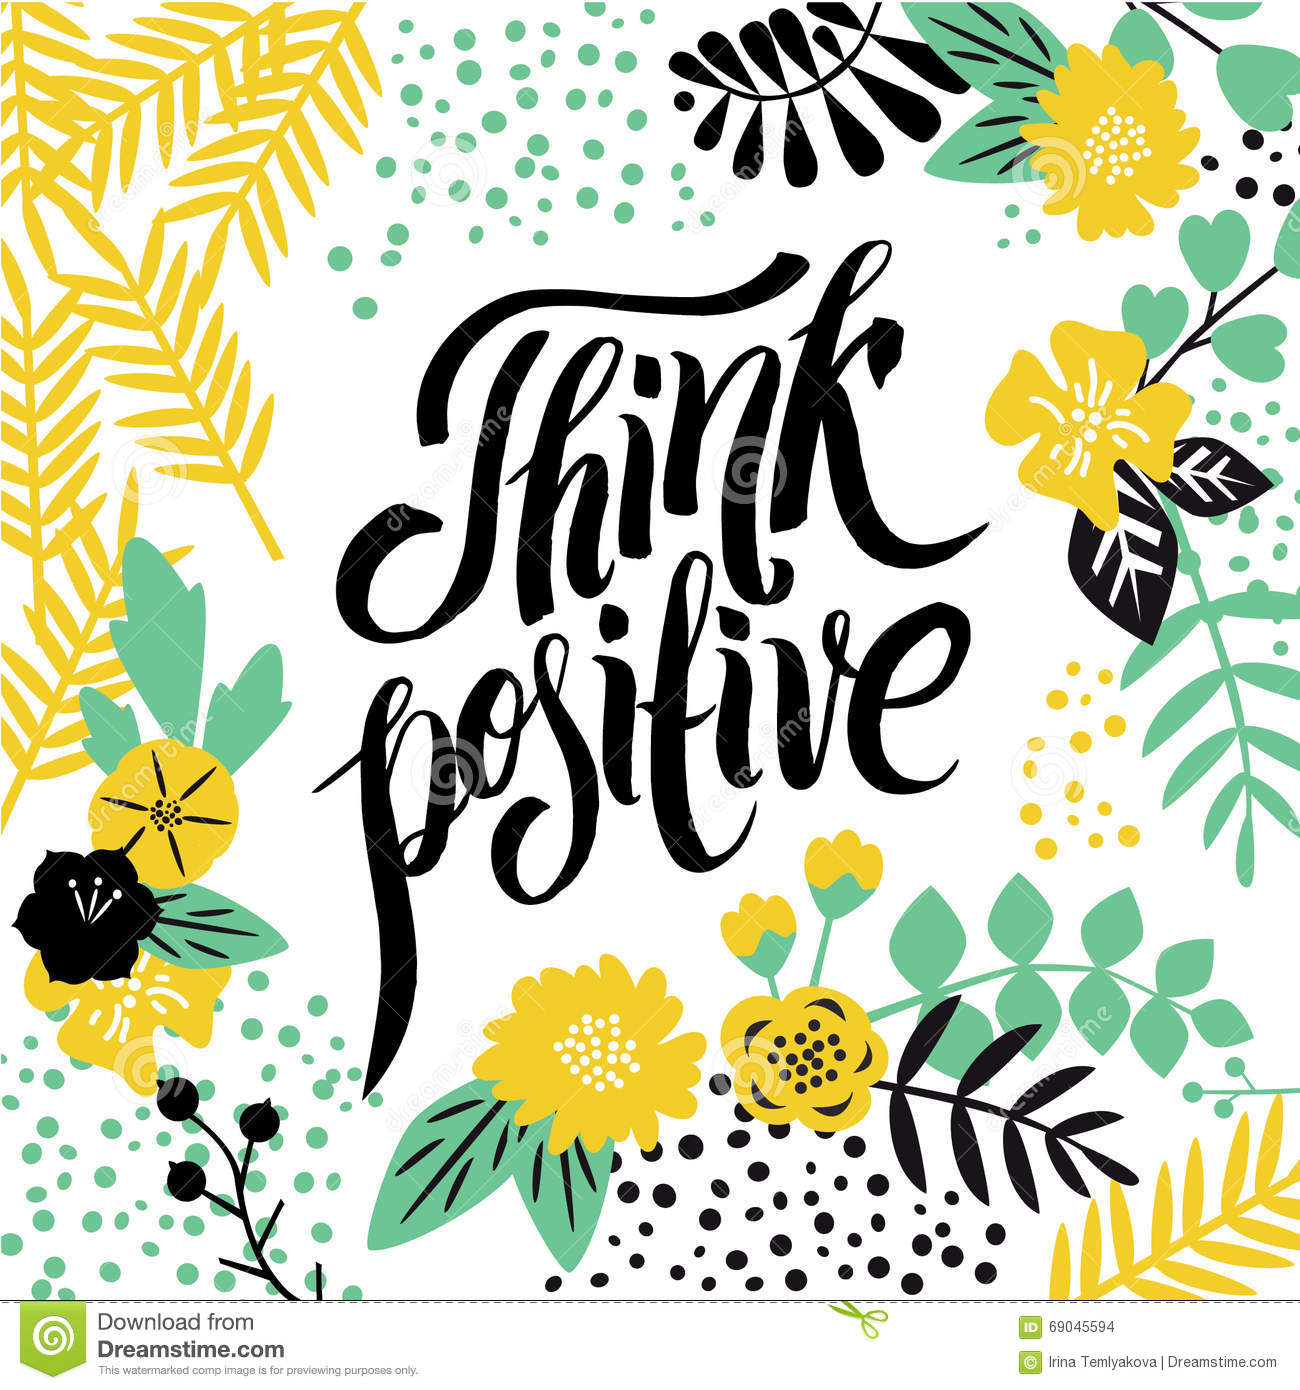 Typographic positive card with inspirational quote about